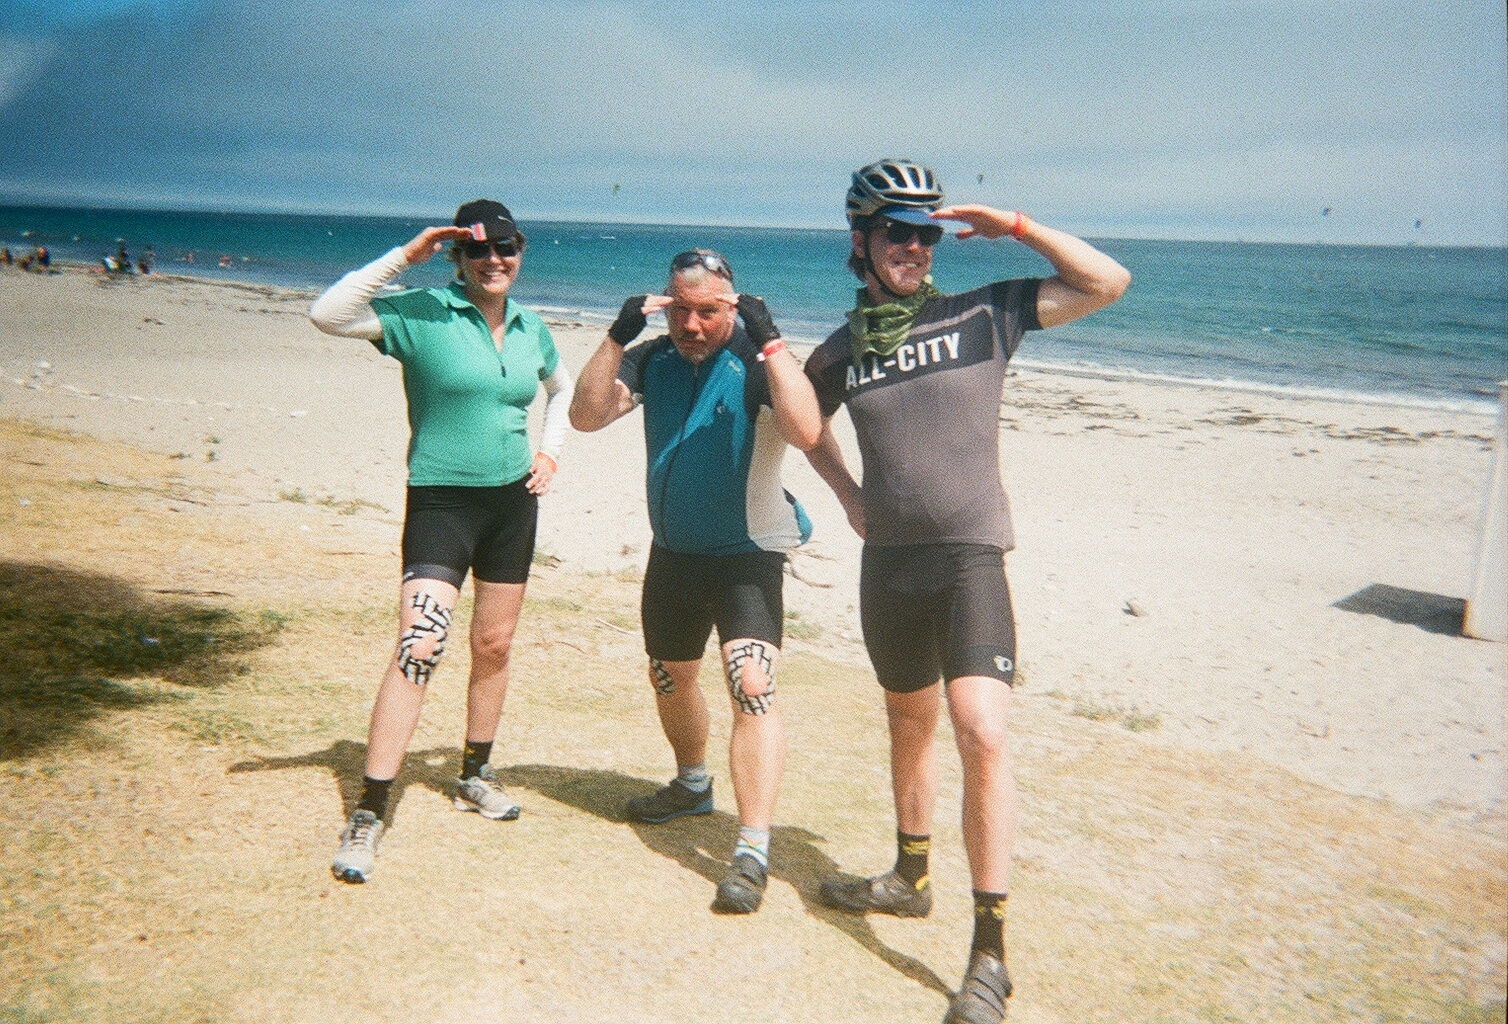 Nearing the finish line in Santa Barbara with taped-up knees to ease our aches and pains